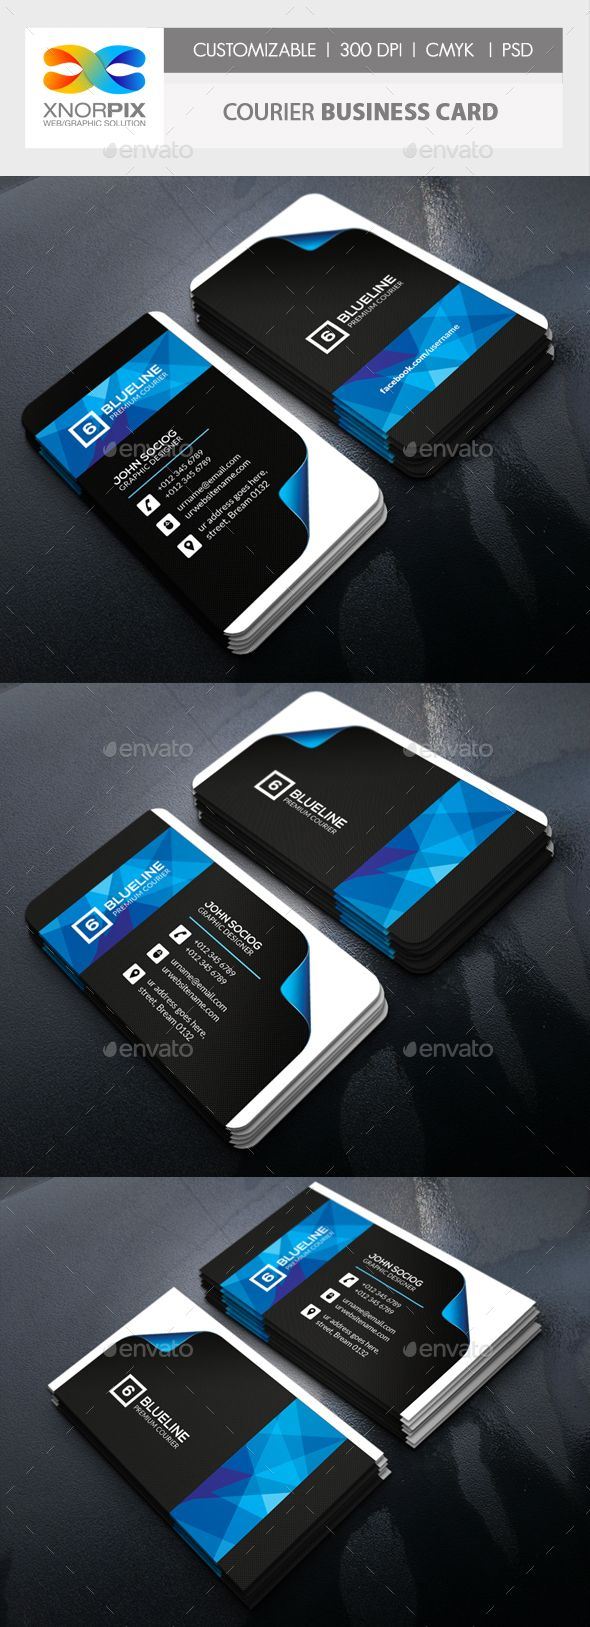 Courier Business Card Business Cards Construction Business Cards Business Card Template Design